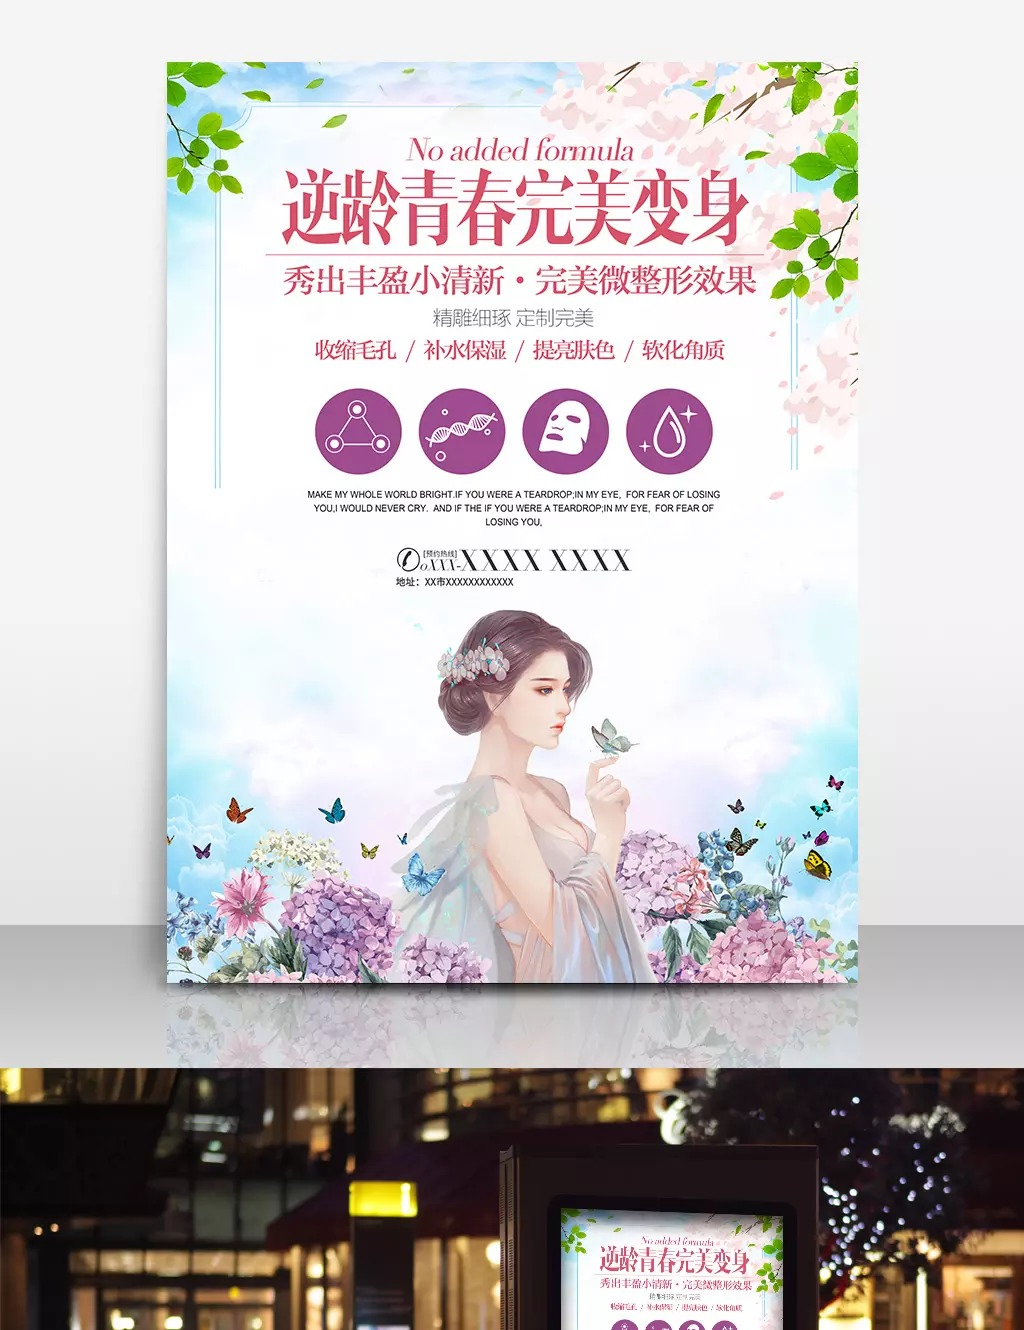 Perfectly Transformed Beauty Salon Poster Salon Cosmetic Skin Care Products Beauty Skin Template For Free Download On Pngtree